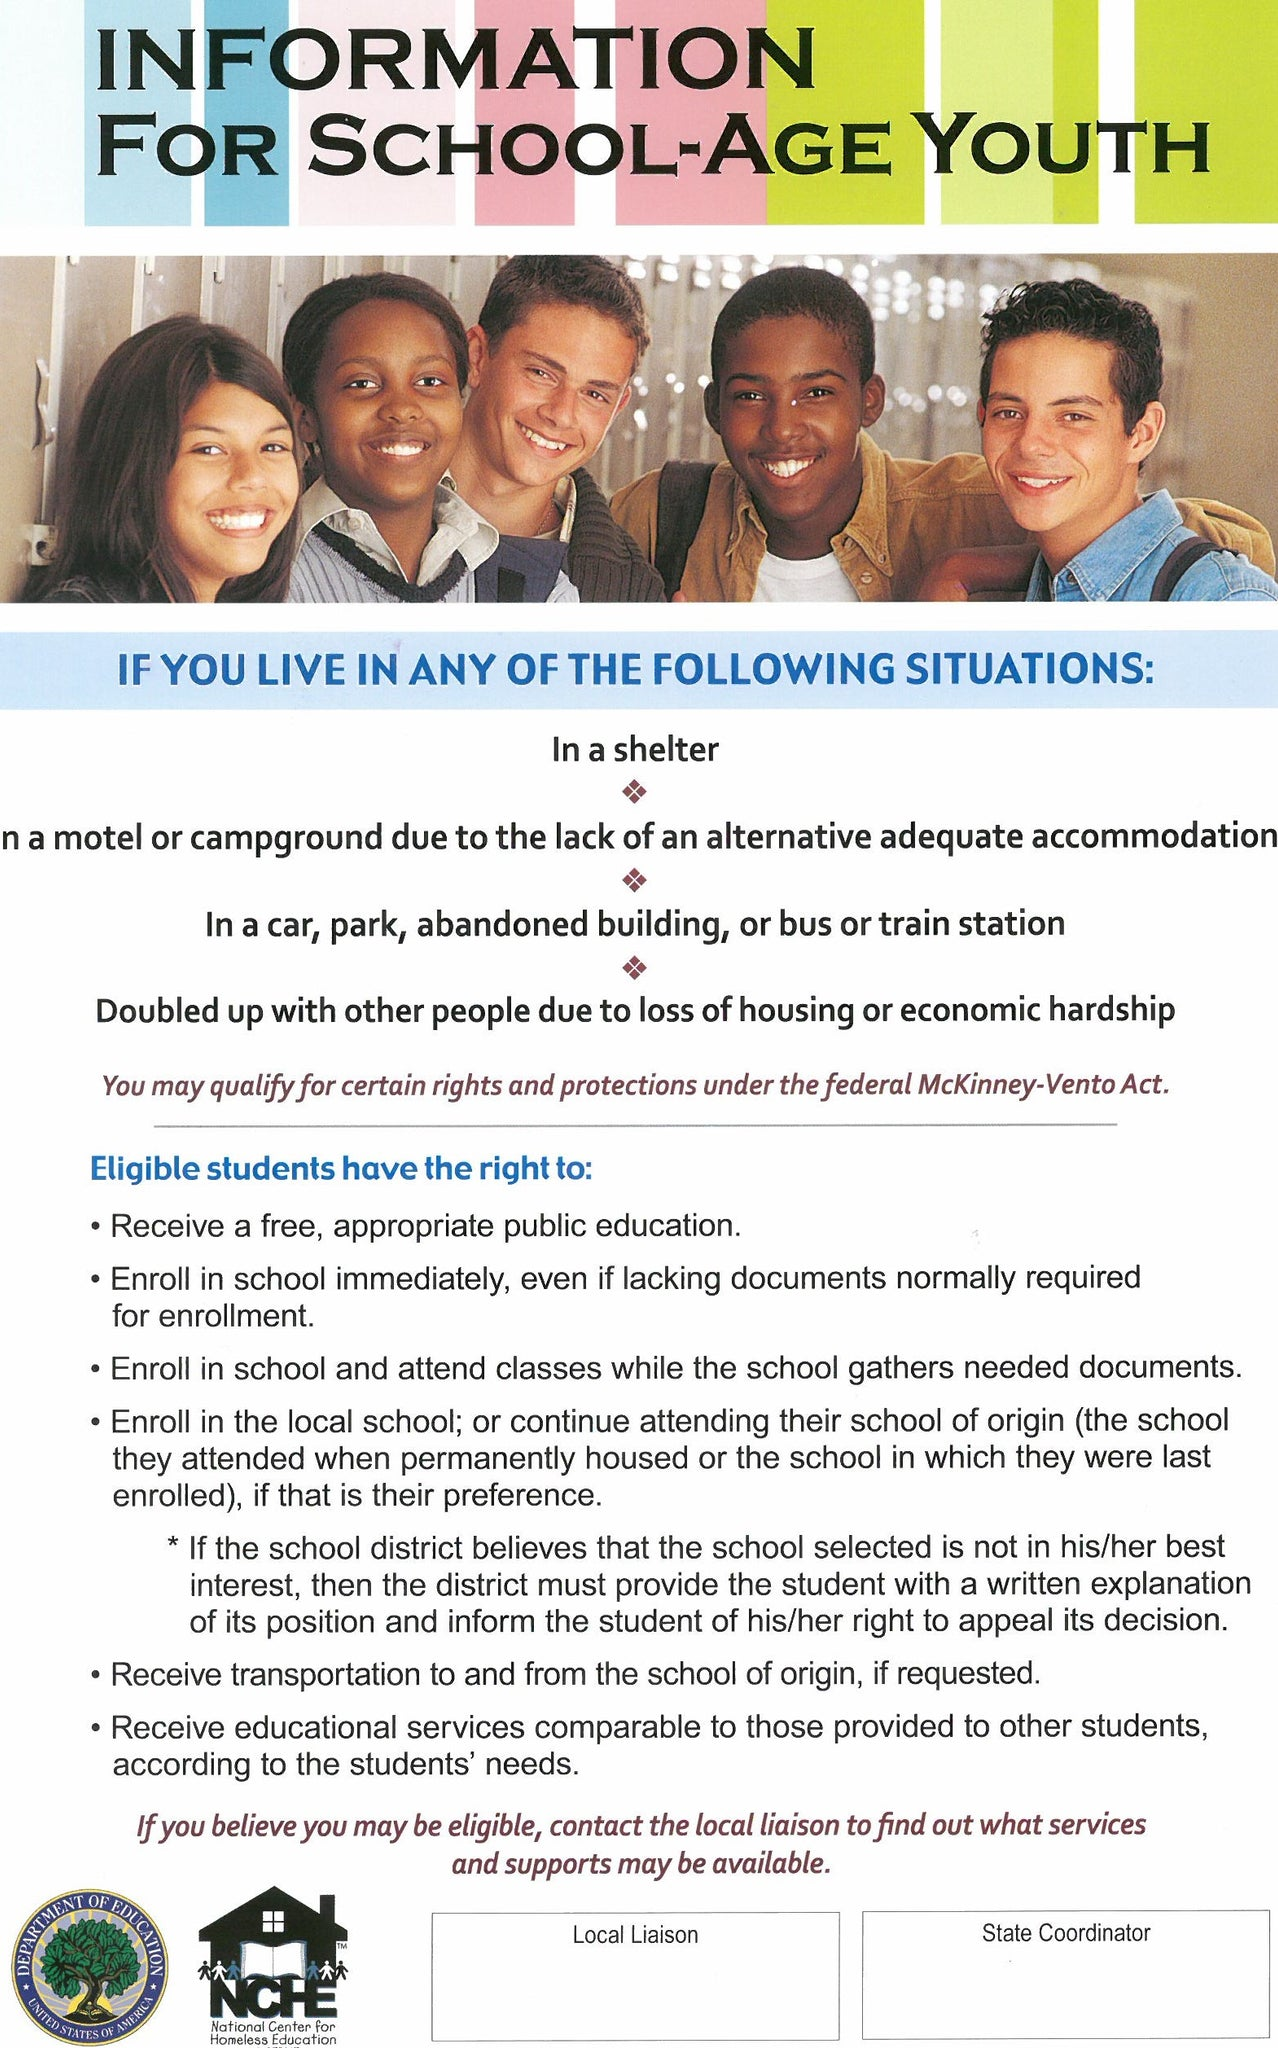 Educational Rights Poster for Youth